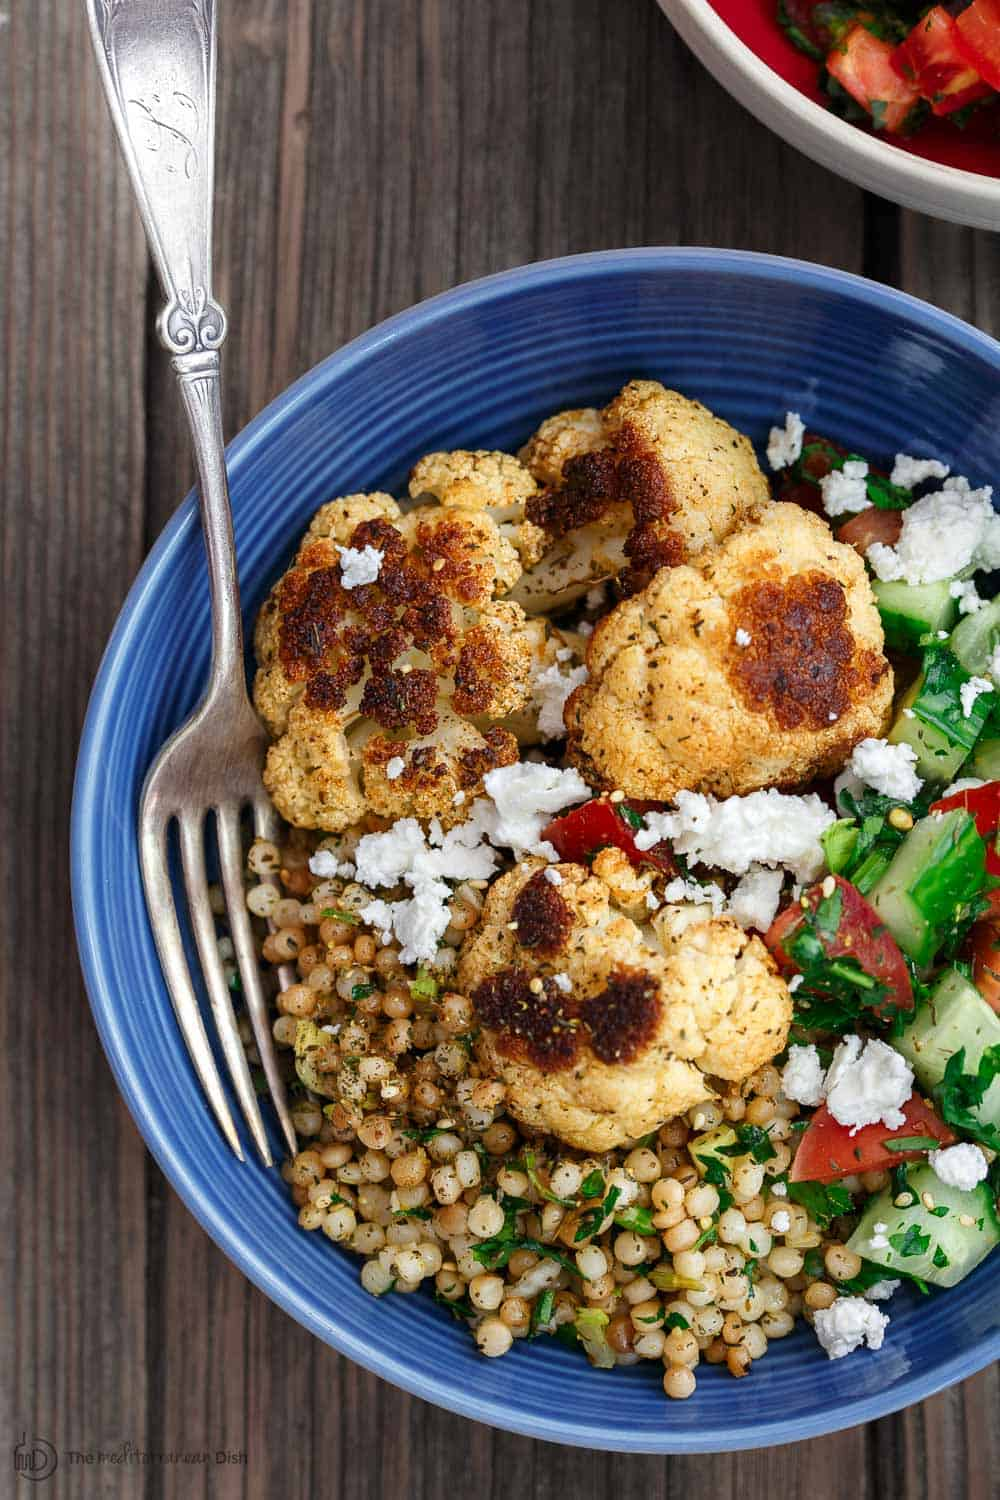 Bowl of Roasted Cauliflower and couscous with vegetables